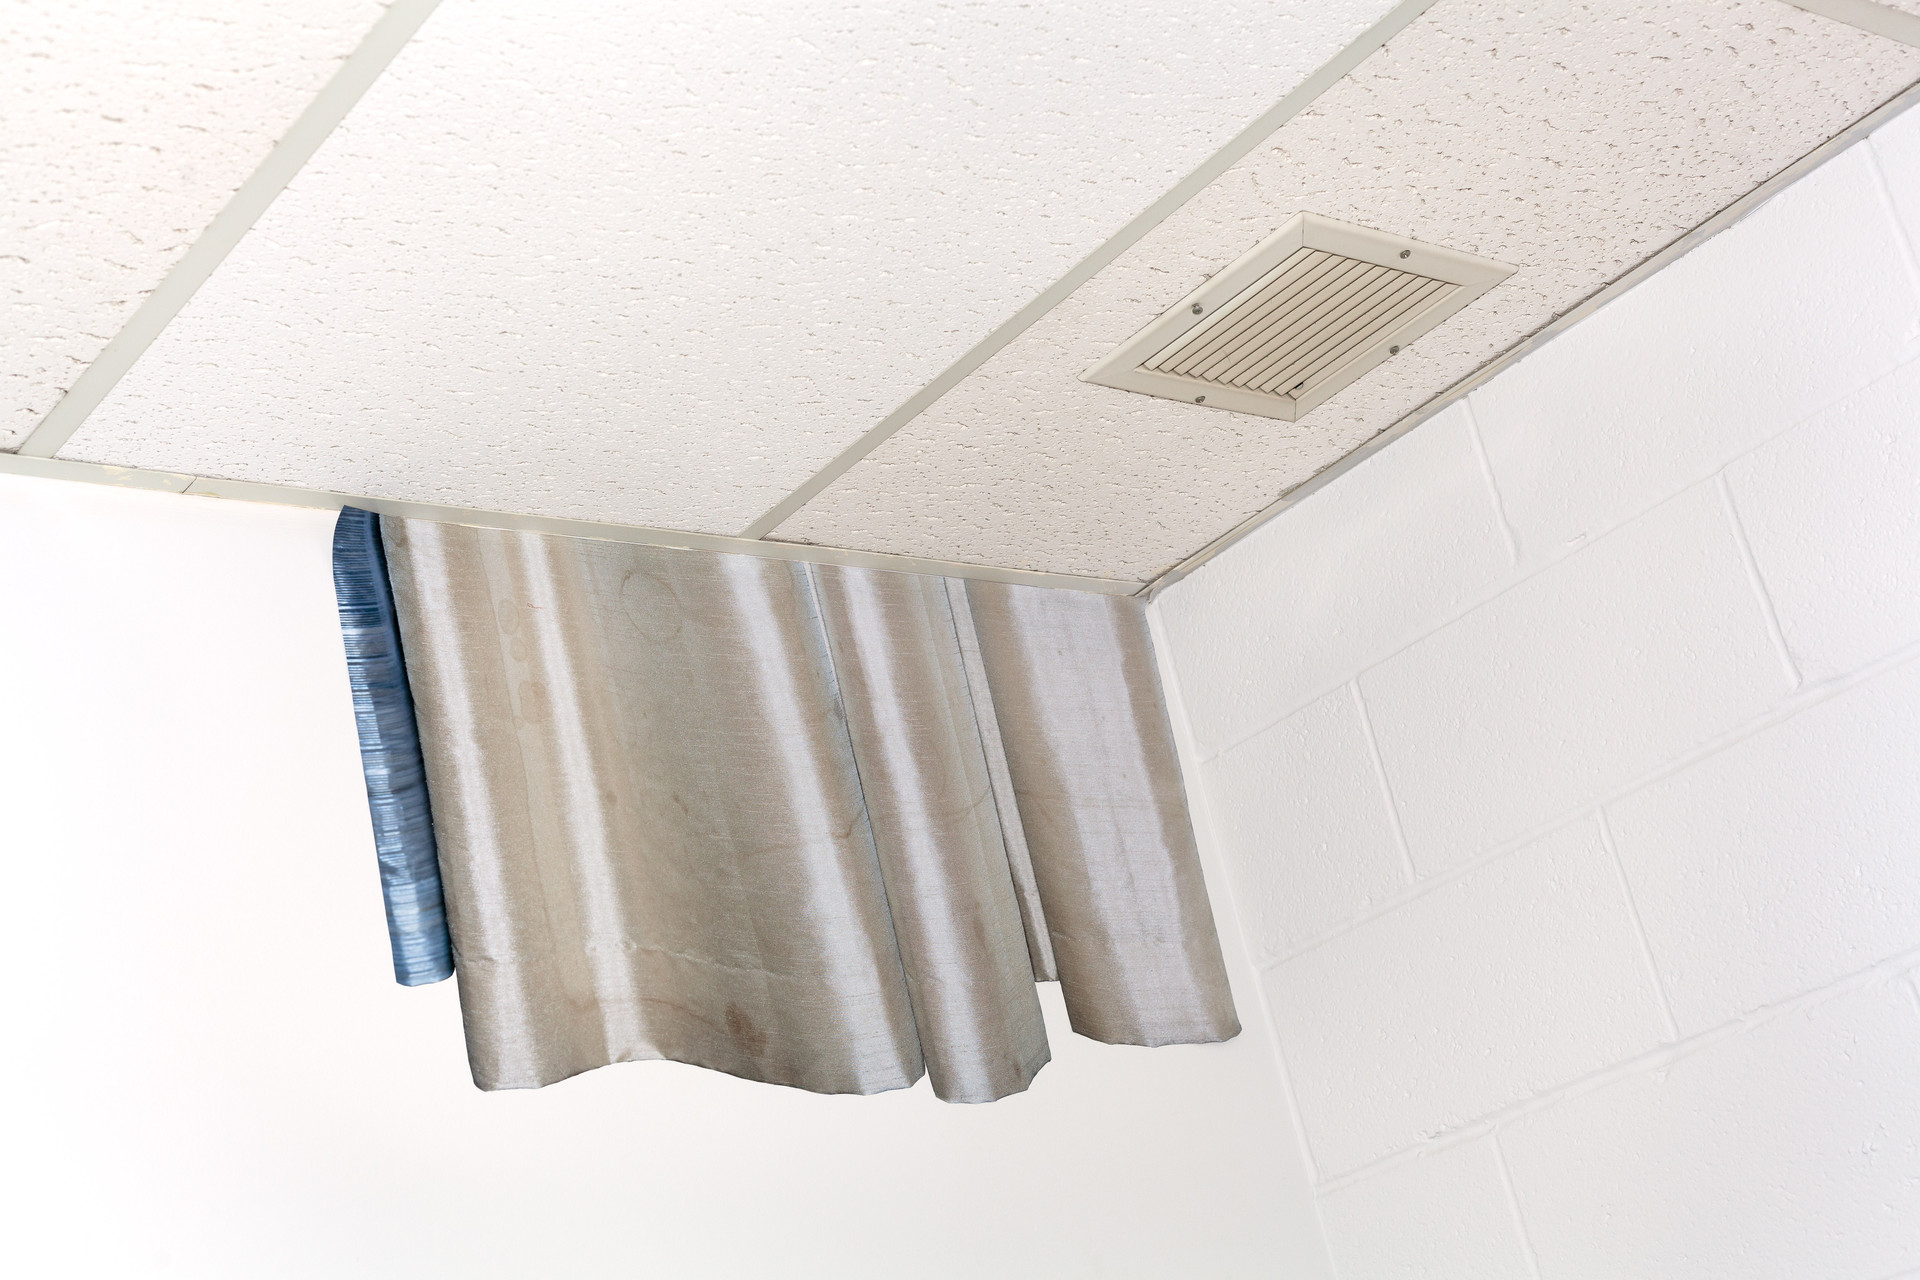 Remodel (drop-tile ceiling curtain)